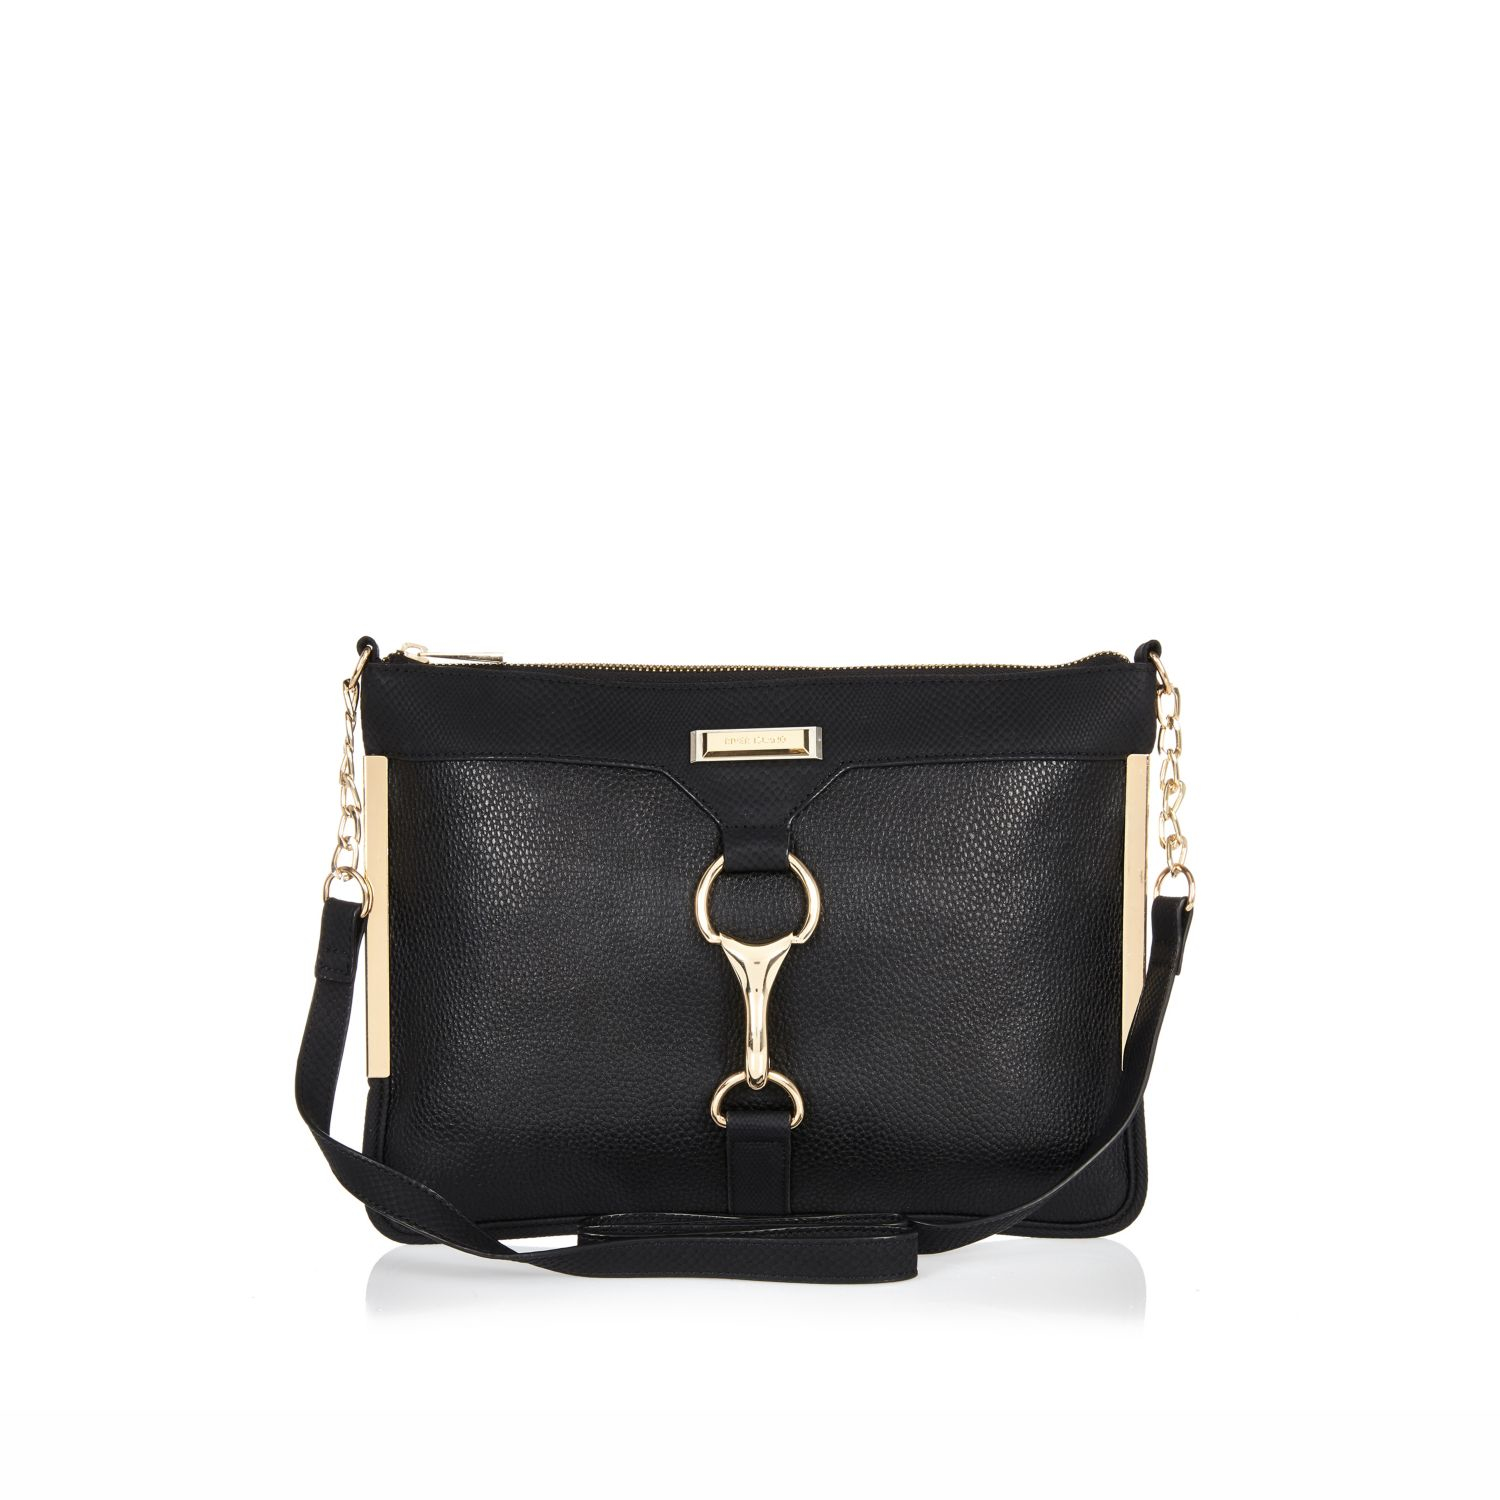 cross river black personals Heritage black click through to find your new favorite bag frost river is built on the heritage of canoe-country ideals, that get-up-and-go.